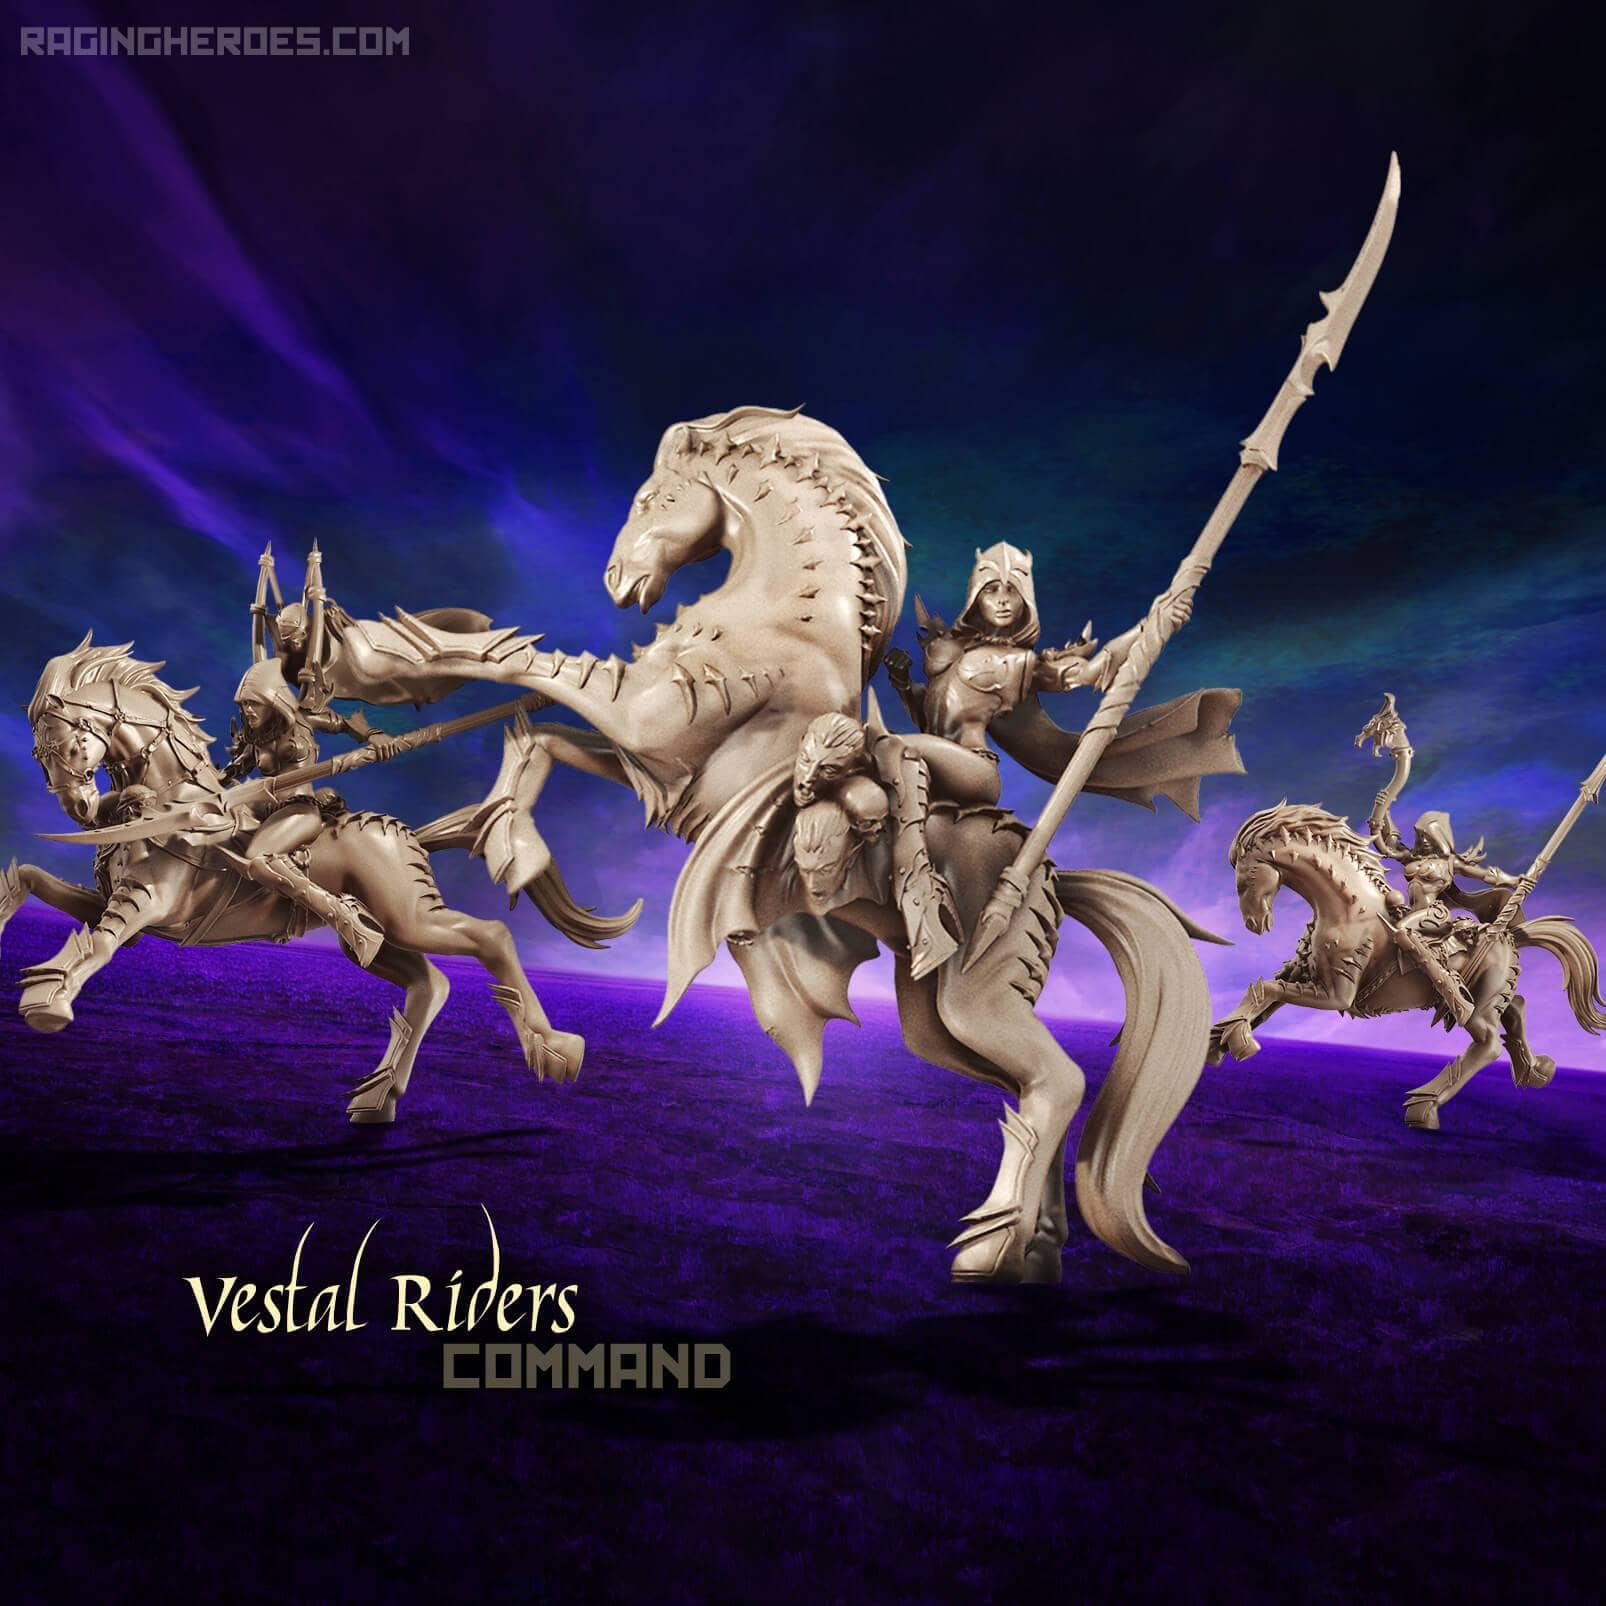 Vestal Riders - Command Group (DE - F) - Raging Heroes